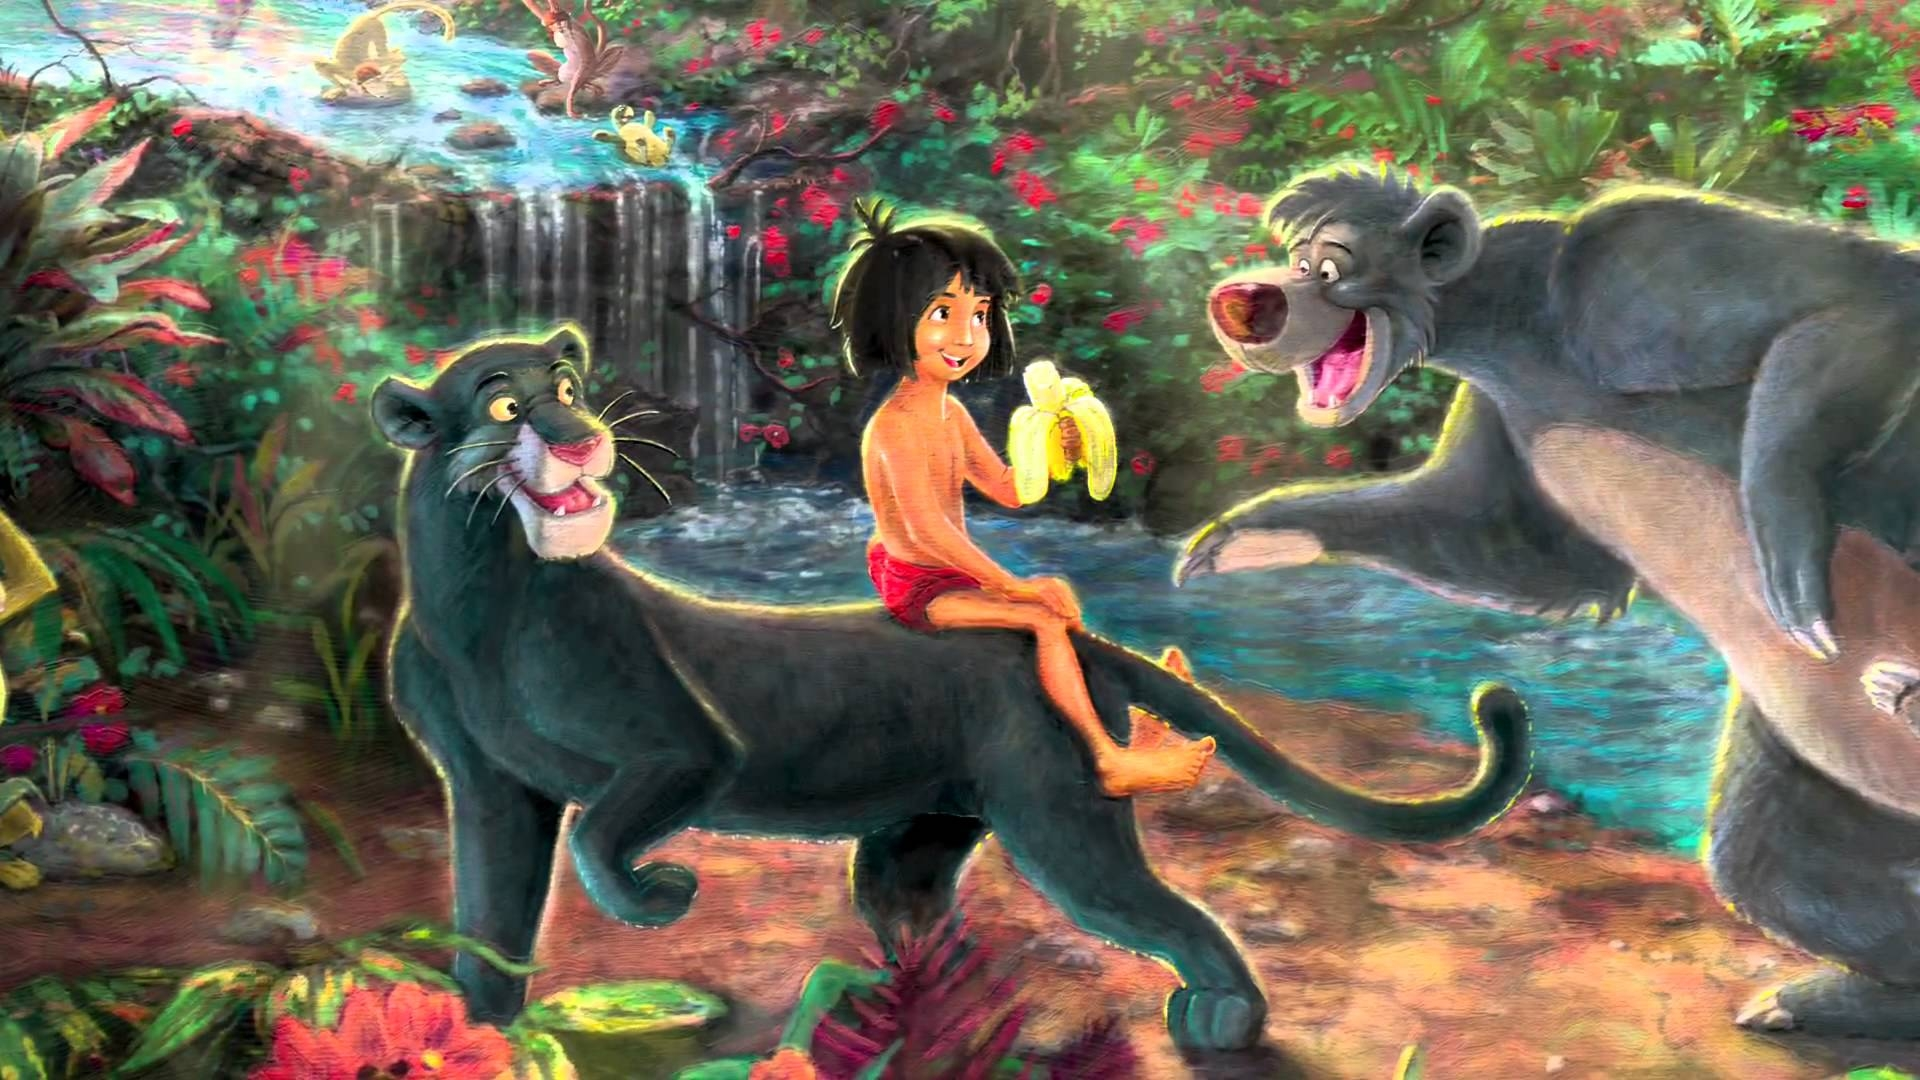 DD Brings Back 'The Jungle Book' on TV: Check Time And Schedule